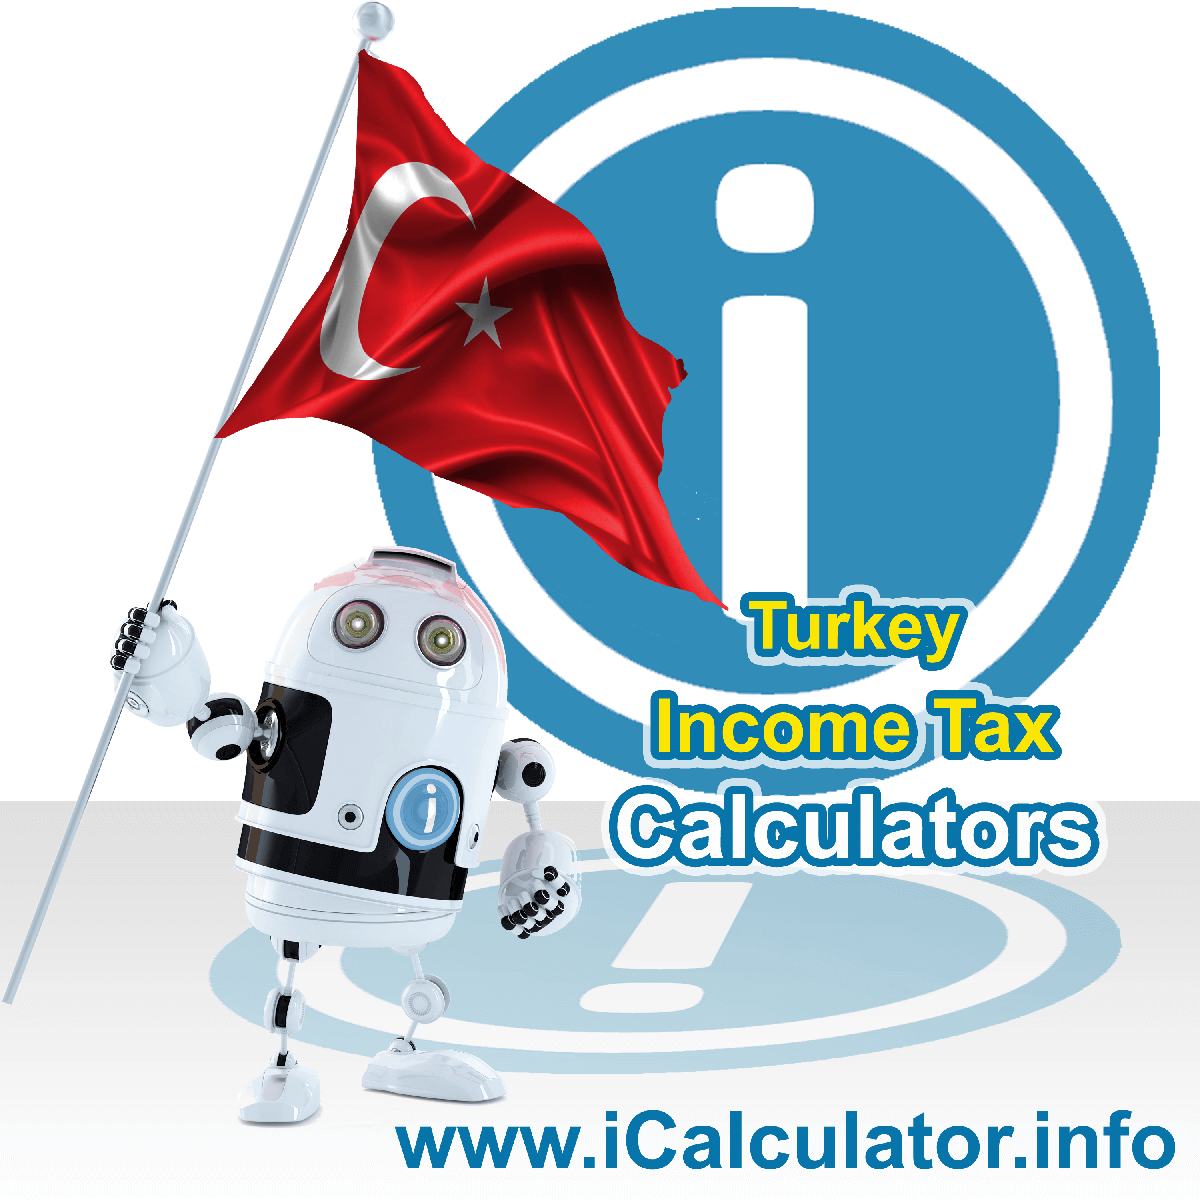 Turkey Income Tax Calculator. This image shows a new employer in Turkey calculating the annual payroll costs based on multiple payroll payments in one year in Turkey using the Turkey income tax calculator to understand their payroll costs in Turkey in 2020